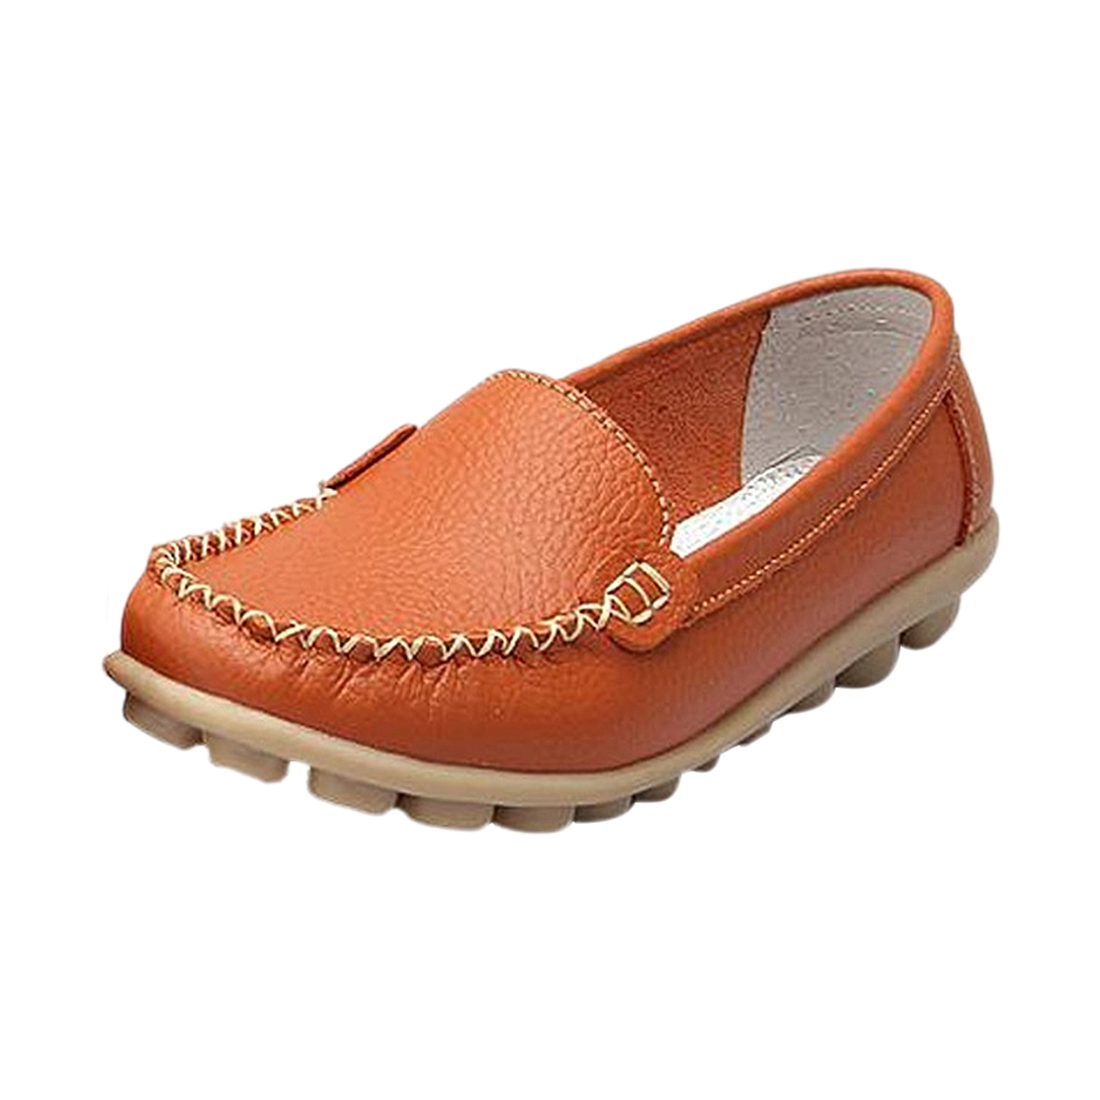 Girl comfortable flat shoes Peas shoes spring new women's breathable leather Casual shoess Orange US7 2017 new spring imported leather men s shoes white eather shoes breathable sneaker fashion men casual shoes